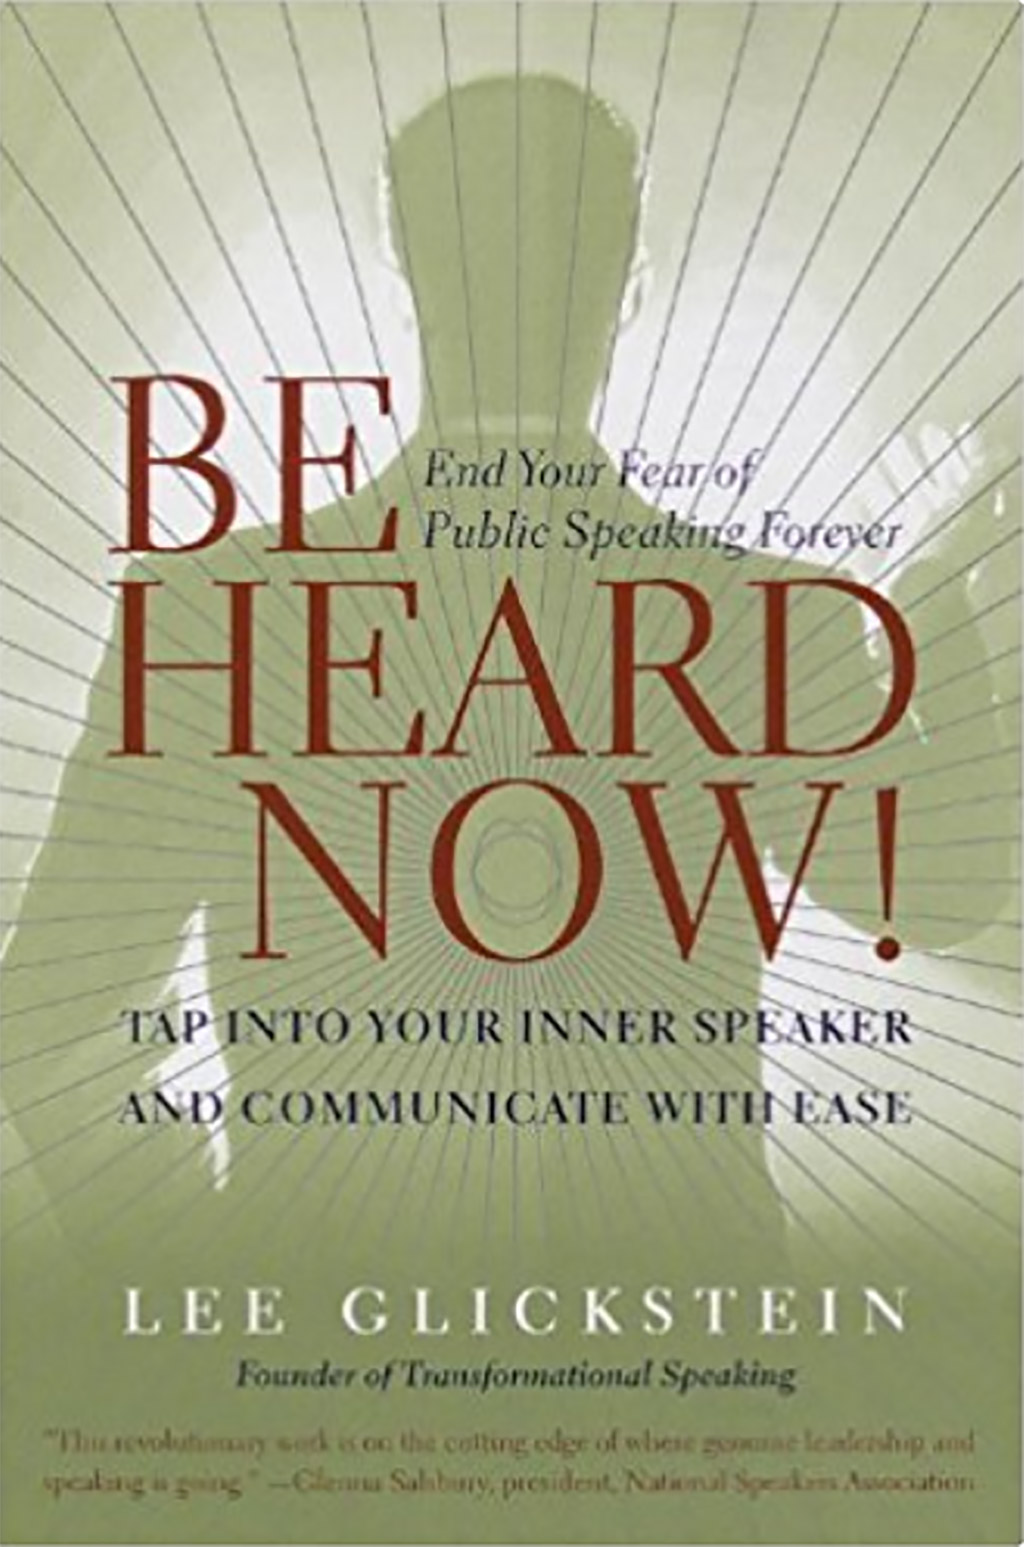 Be Heard Now - End Your Fear of Public Speaking